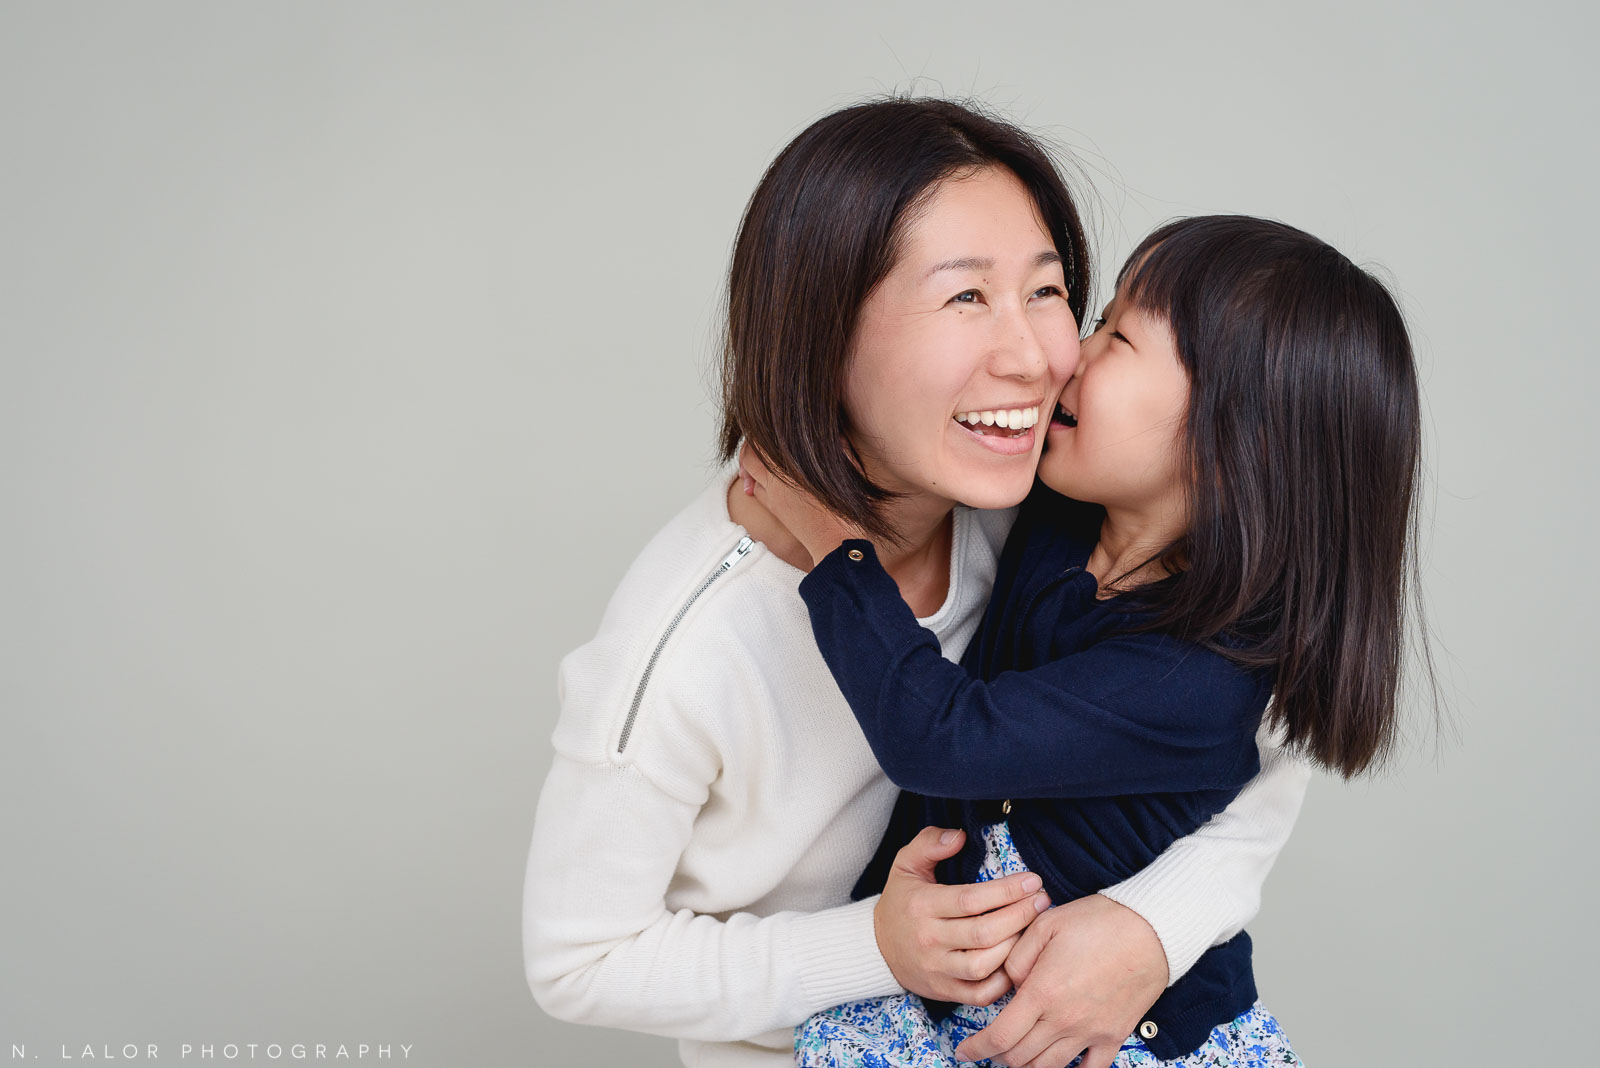 Mom with daughter. Greenwich CT Photo Studio family session by N. Lalor Photography.